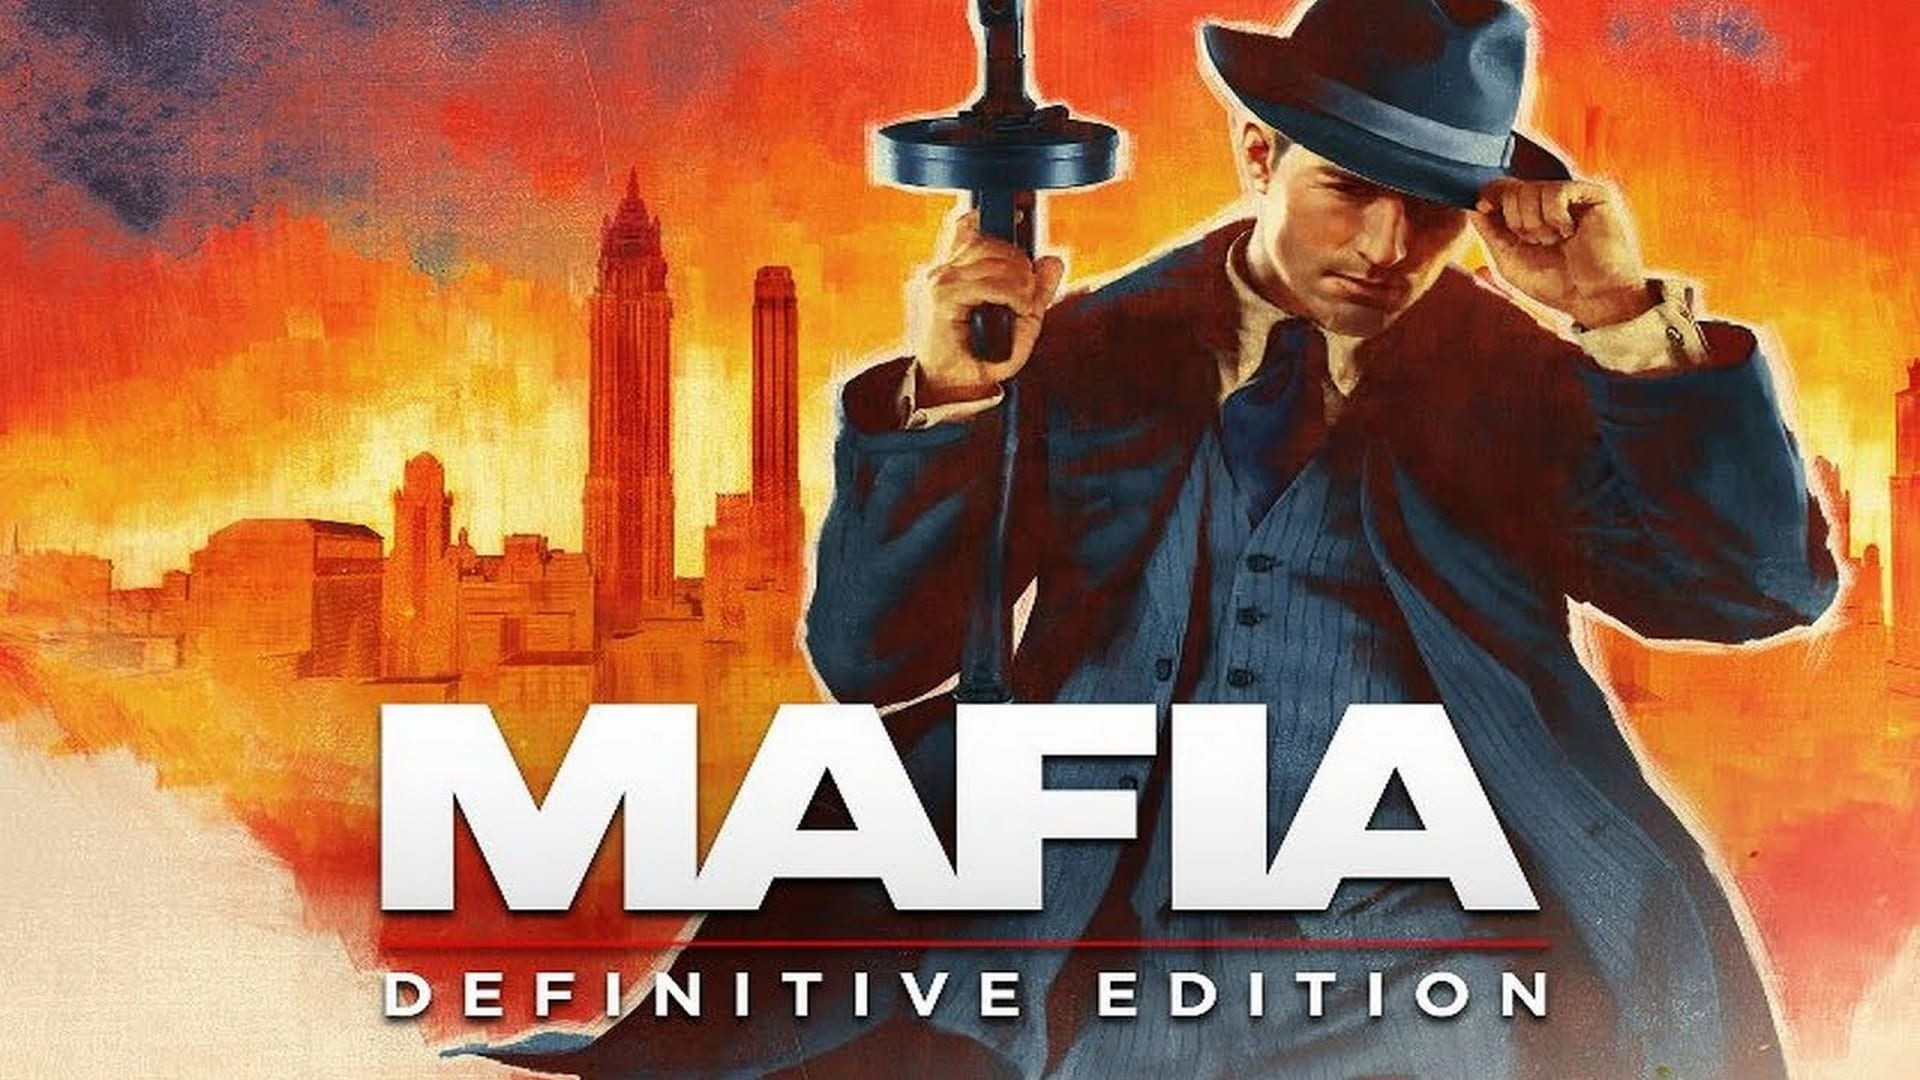 Mafia: Definitive Edition's Full Licensed Soundtrack Revealed